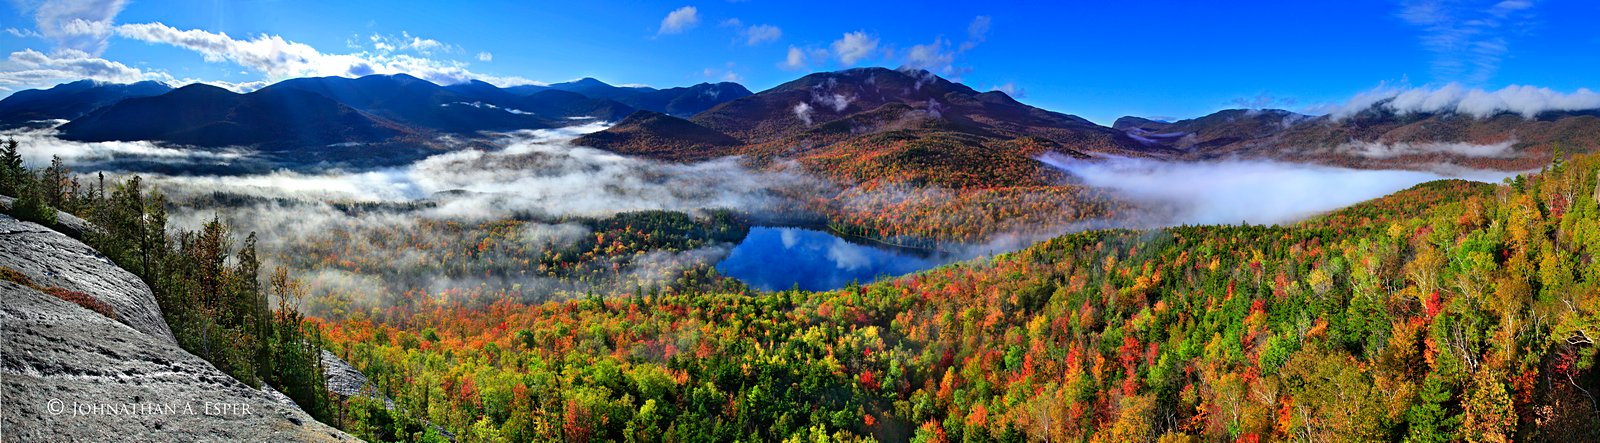 Mt Jo,Mt. Jo,Heart Lake,fall,valley,fog,2011,High Peaks,Adirondack,mountains,panorama,Heart Lake, Mt Jo secret cliffs,autumn,Adirondack High Peaks, photo